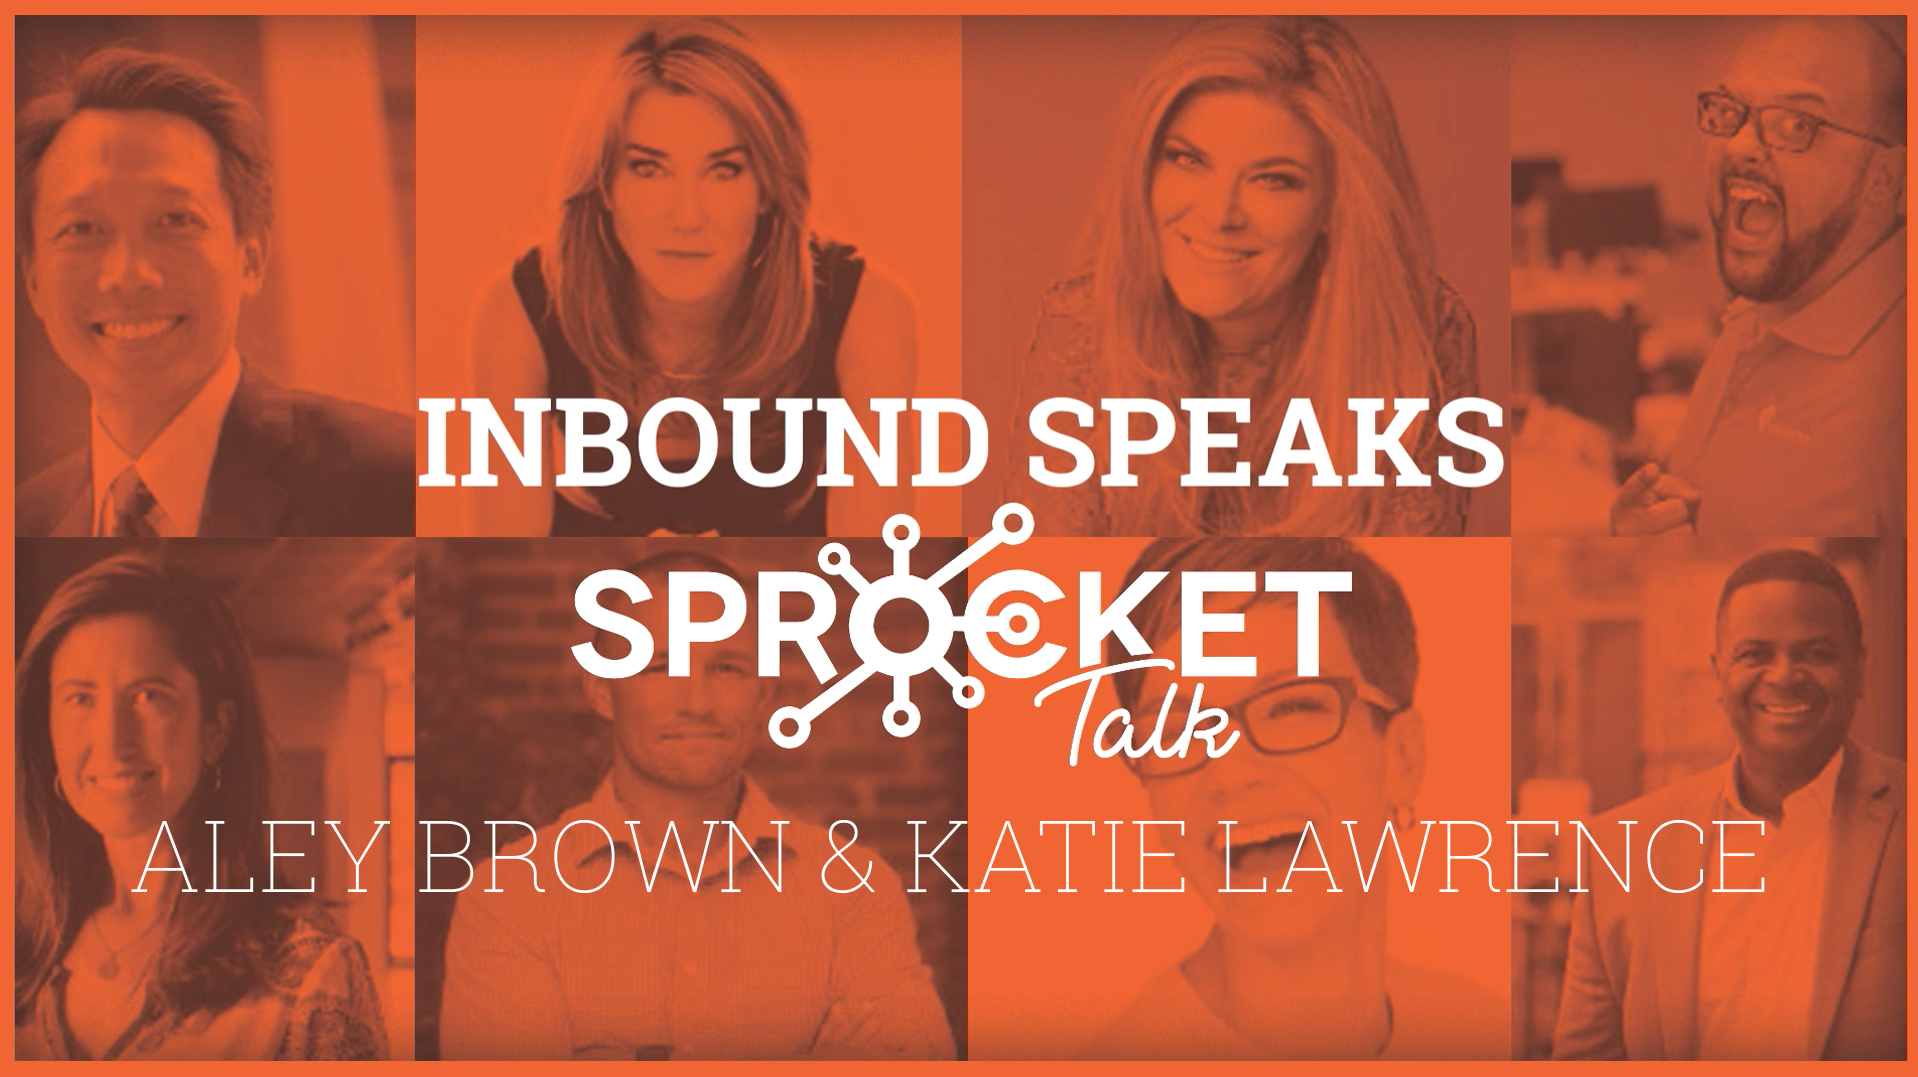 Aley Brown & Katie Lawrence Smarketing: The Key to Revving Your Inbound Engine #Inbound19